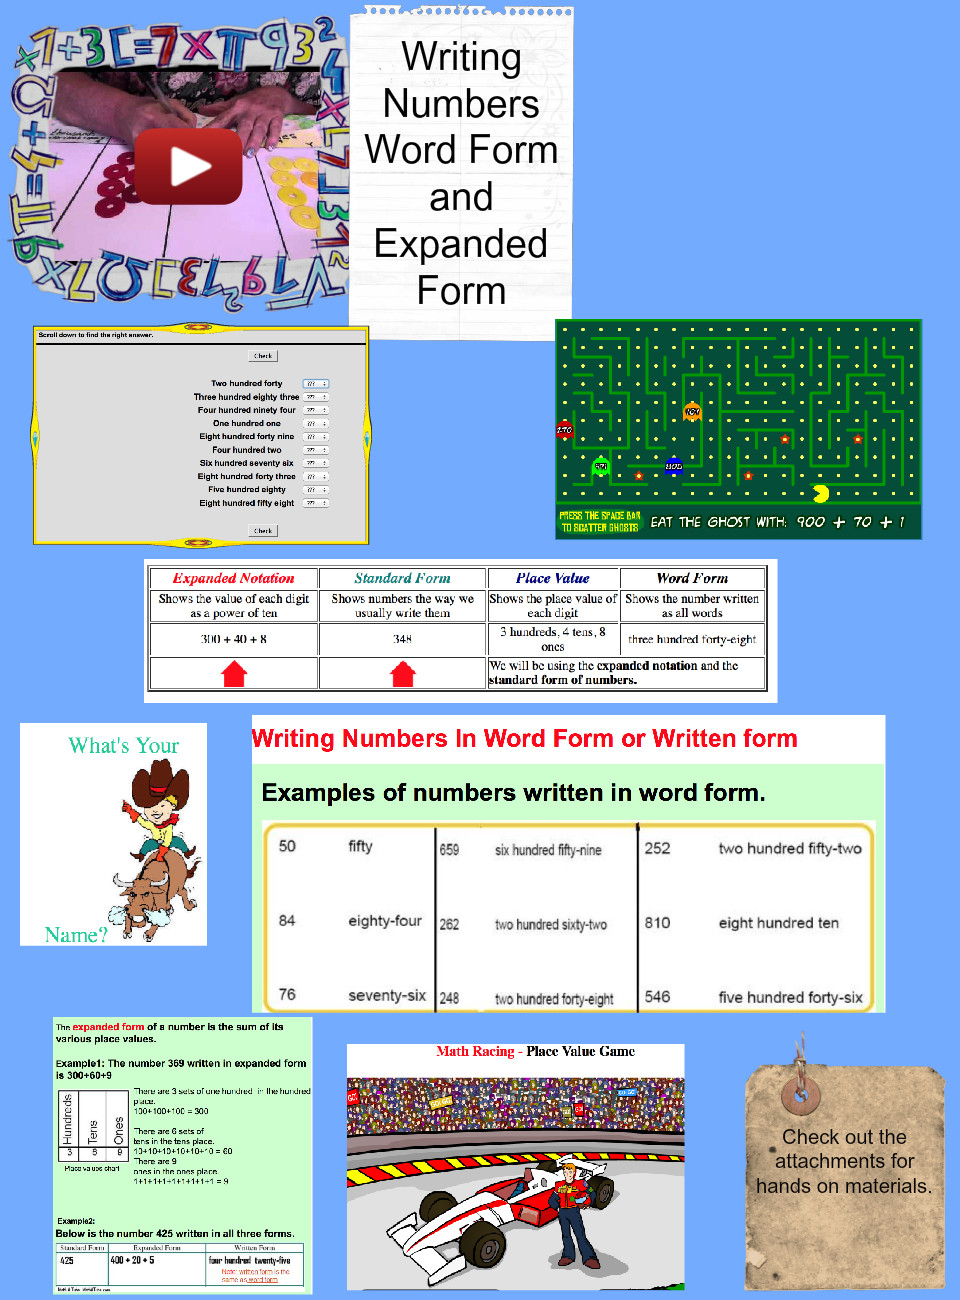 Writing numbers in words and expanded notacion